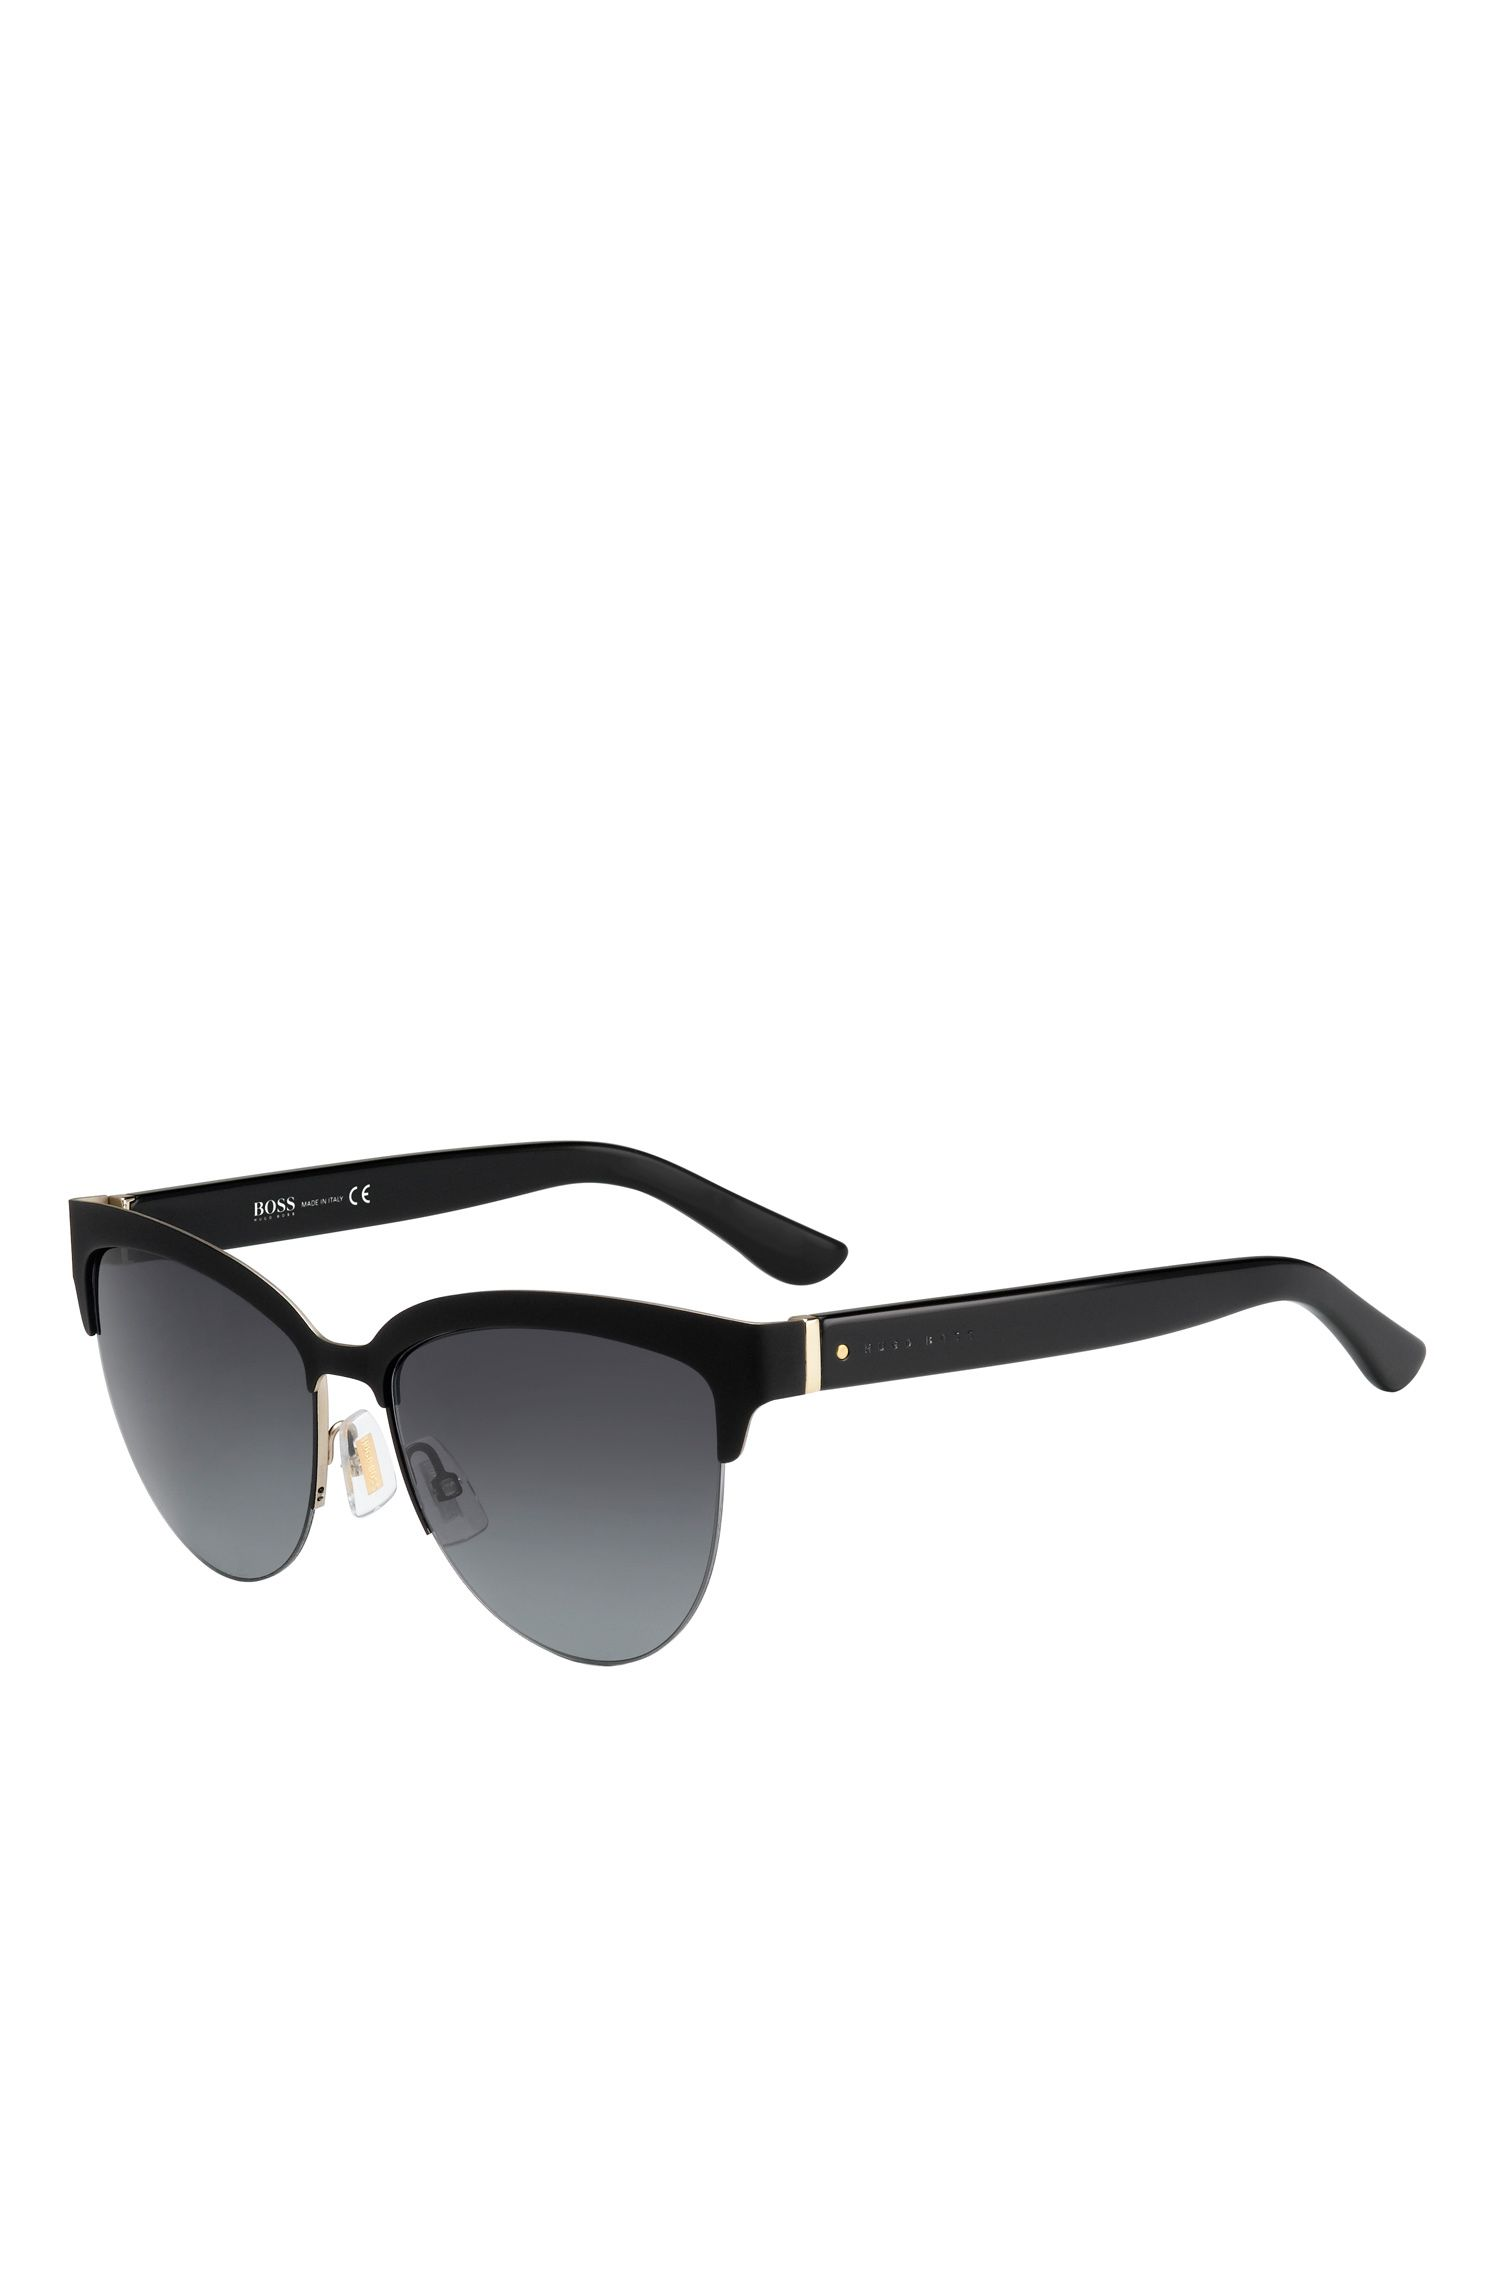 'BOSS 678S' | Black Lenses Half-Frame Cateye Sunglasses